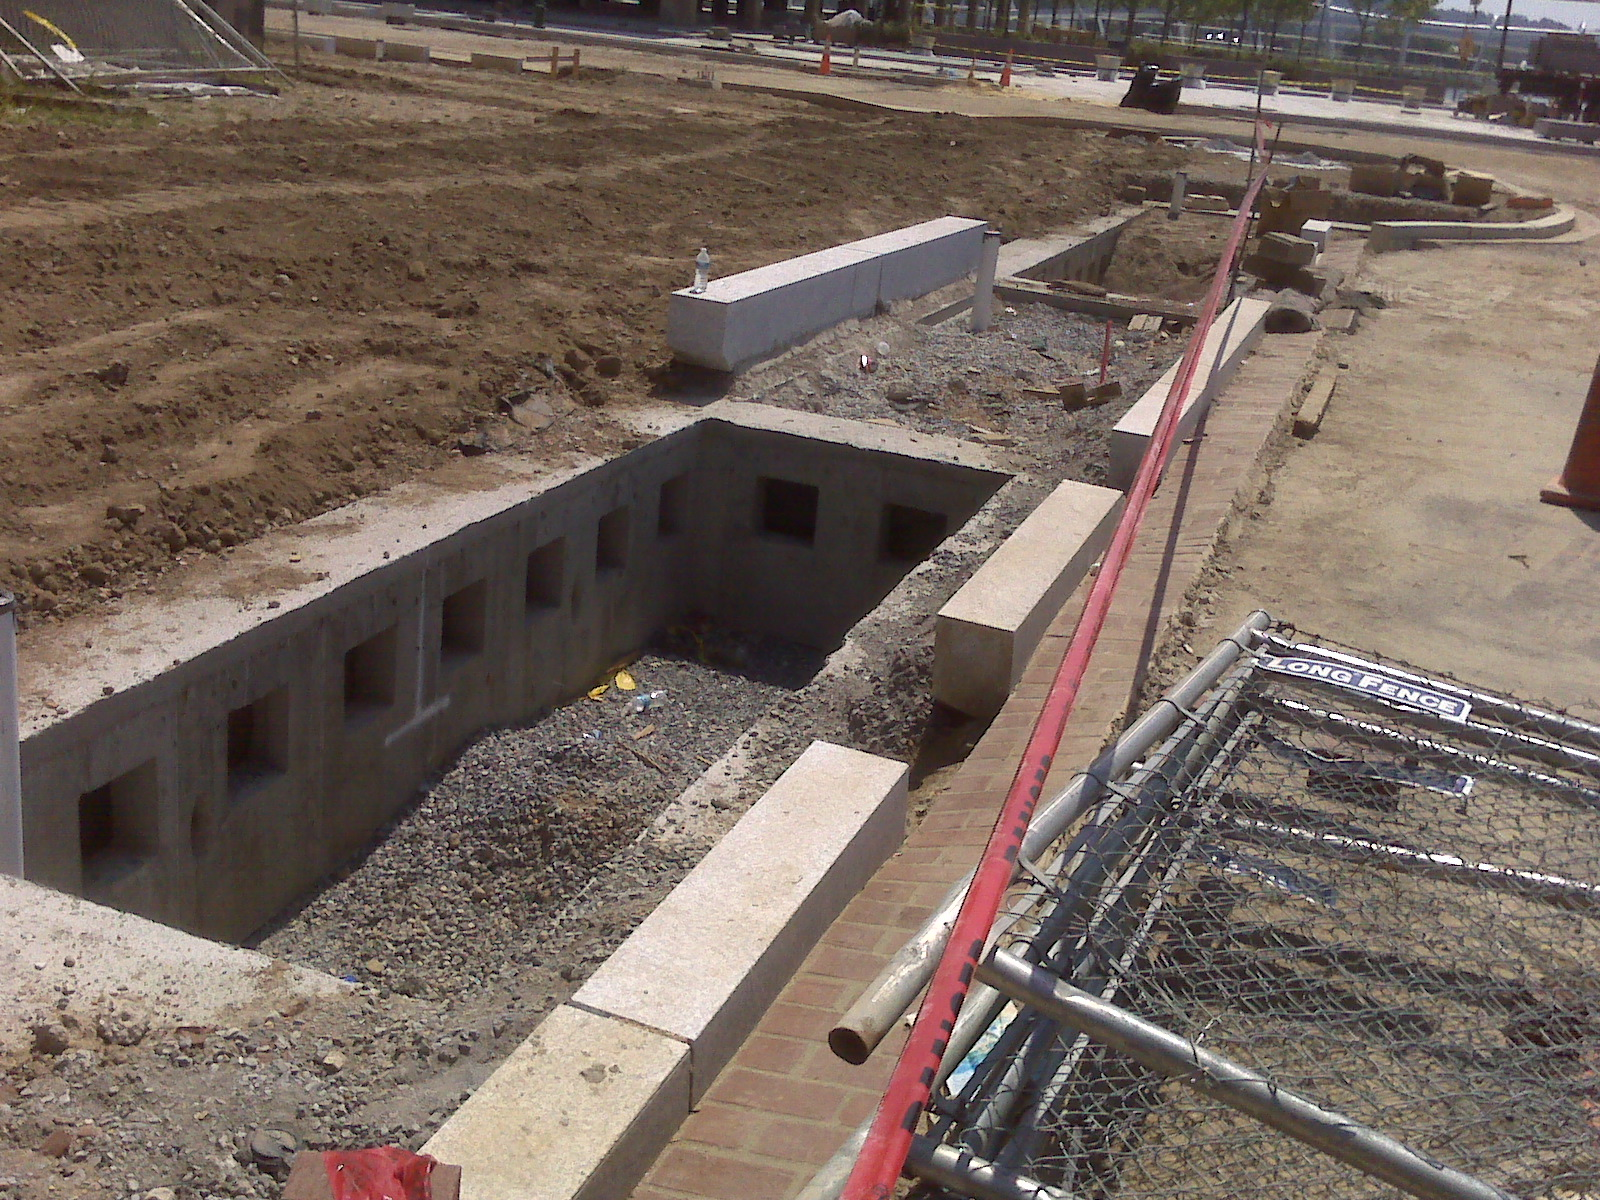 Navy Yard sidewalks get sustainable stormwater systems